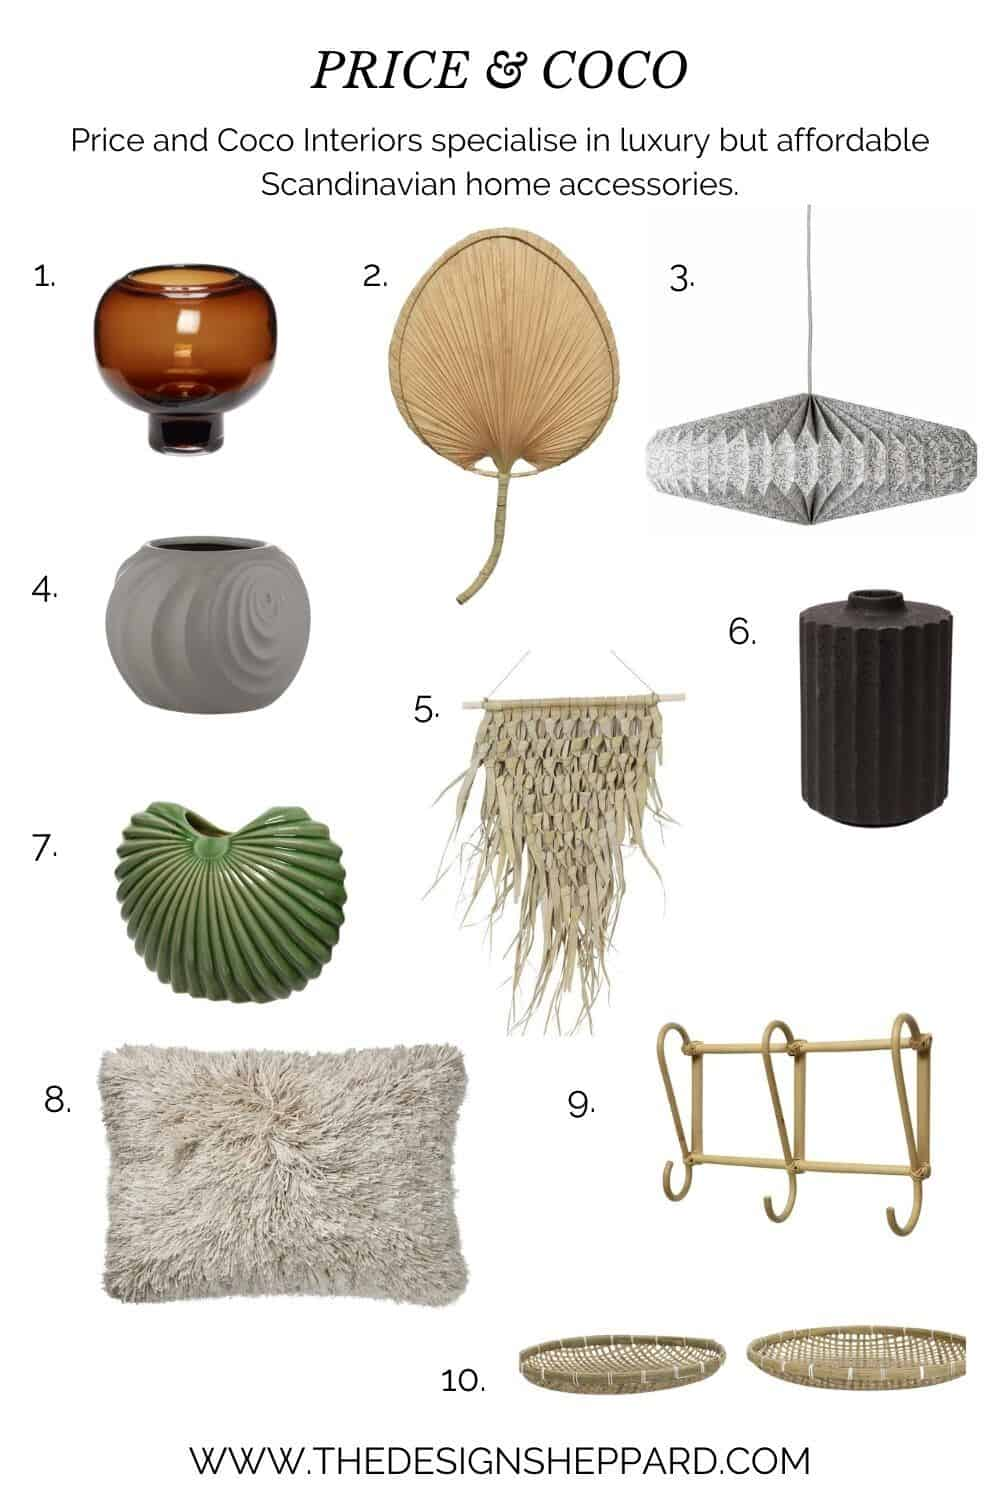 Affordable luxury homewares from Price & Coco Interiors.